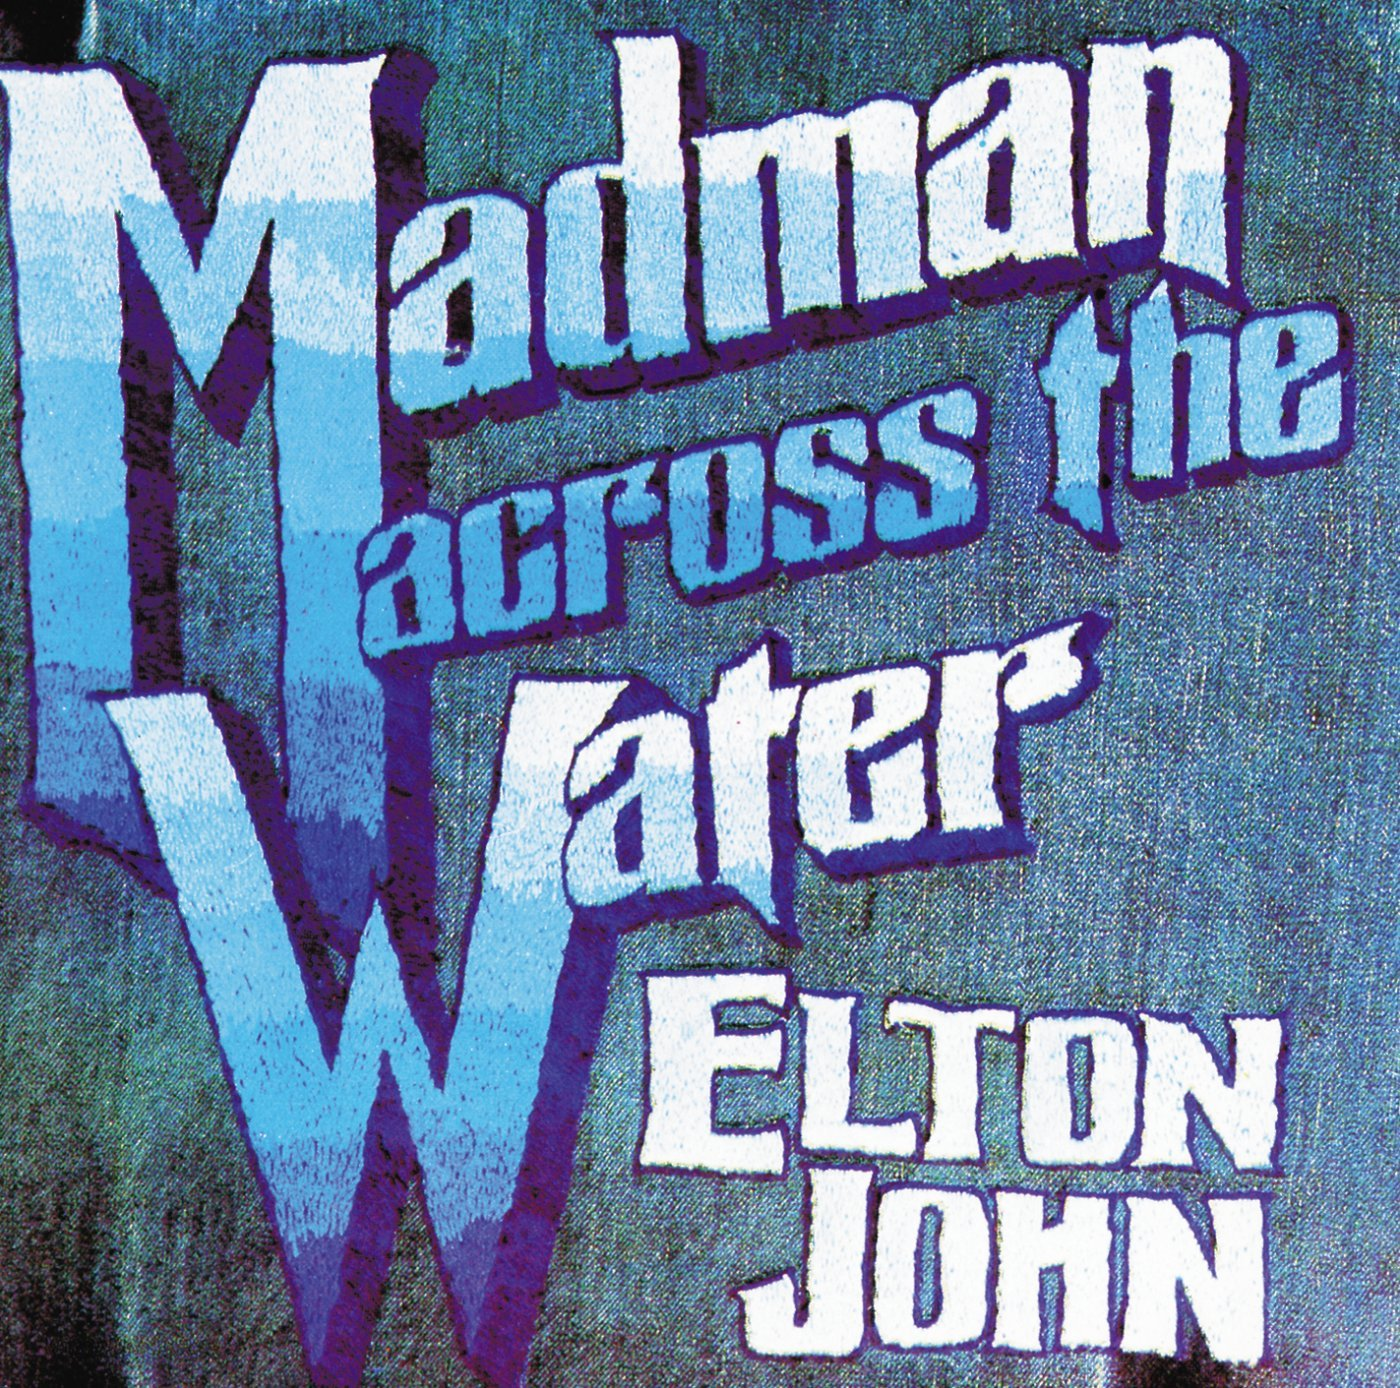 SACD : Elton John - Madman Across the Water (Hybrid) (Hybrid SACD, Multichannel/Stereo SACD)